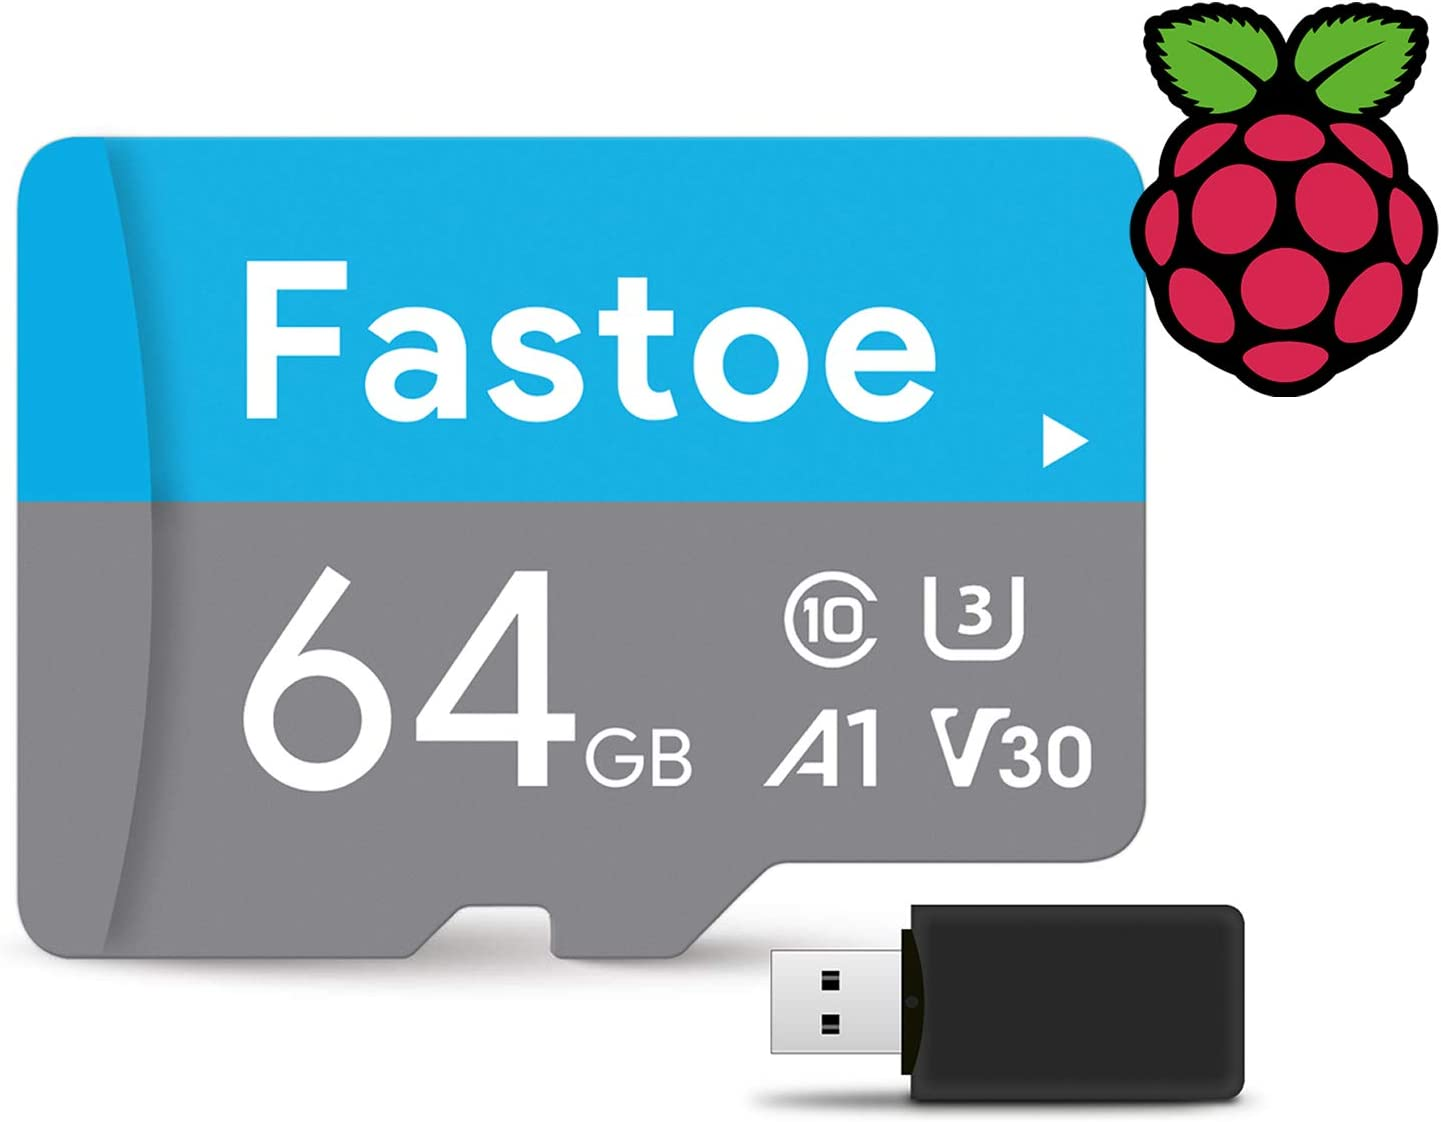 64GB Branded Micro SD Card with Attract Mode Retropie Image for Raspberry PI 3 3B and 3B+